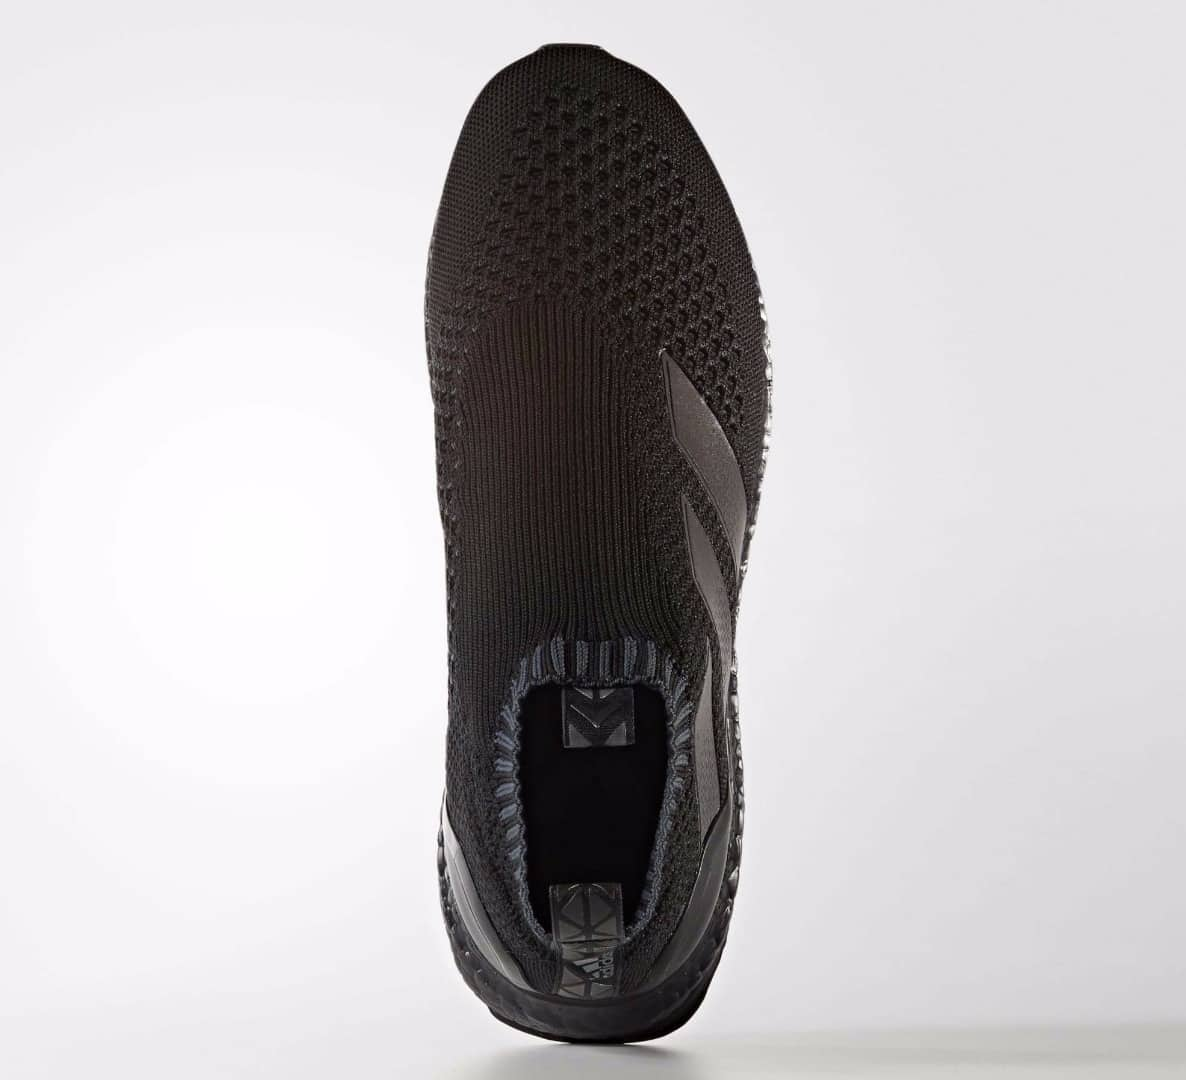 sneakers-adidas-ace16-purecontrol-ultra-boost-triple-black-img4